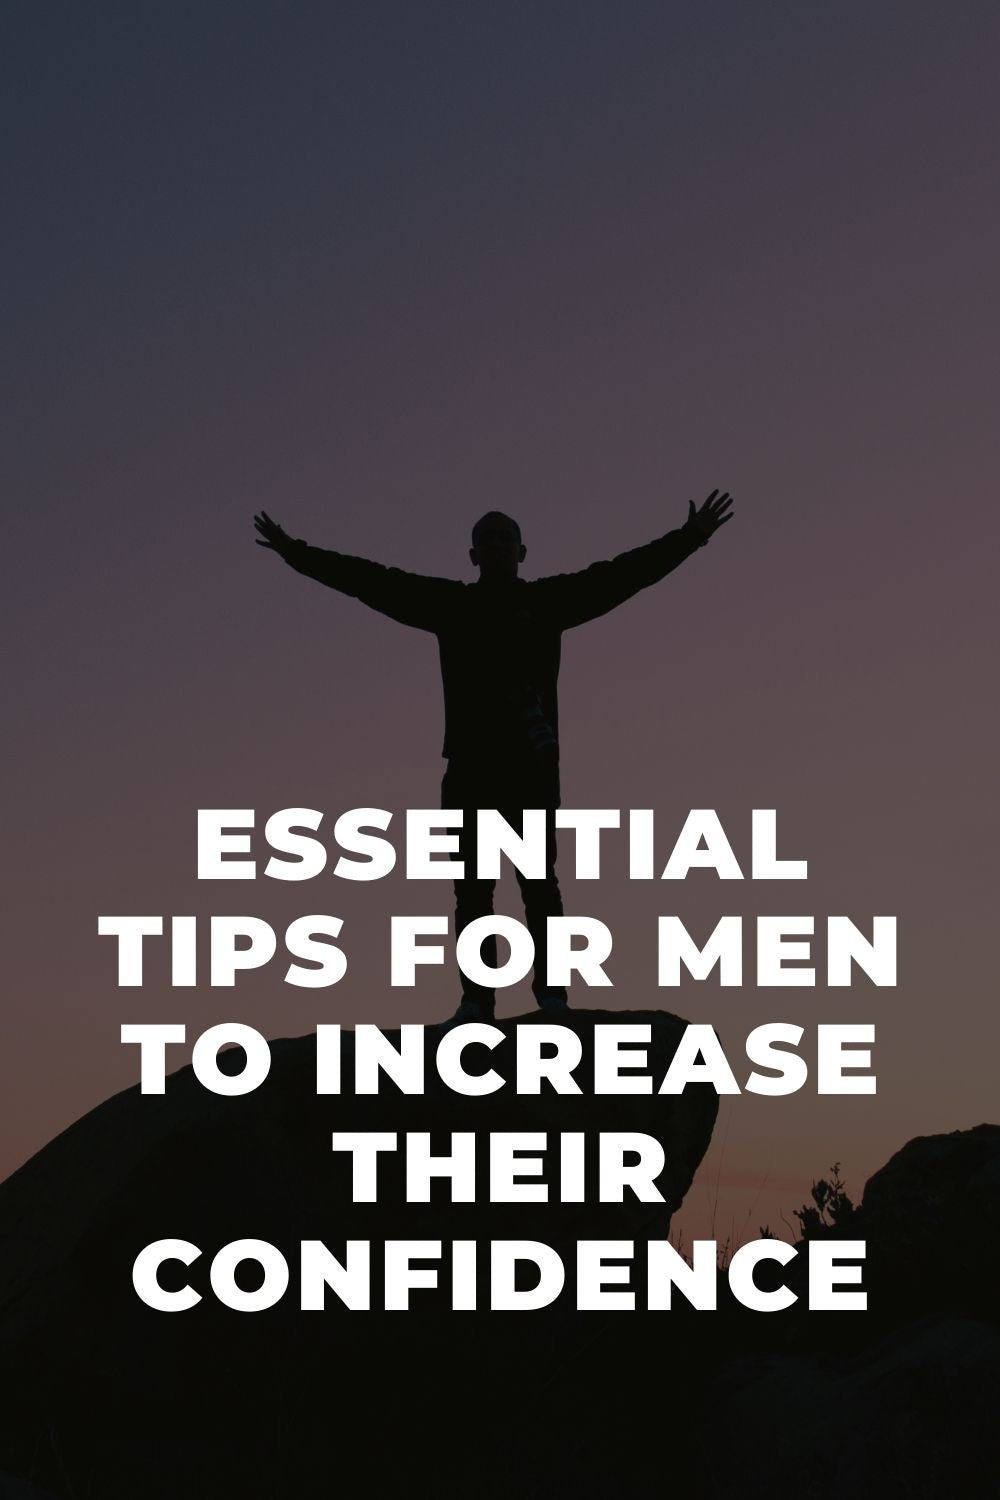 Essential Tips for Men to Increase Their Confidence